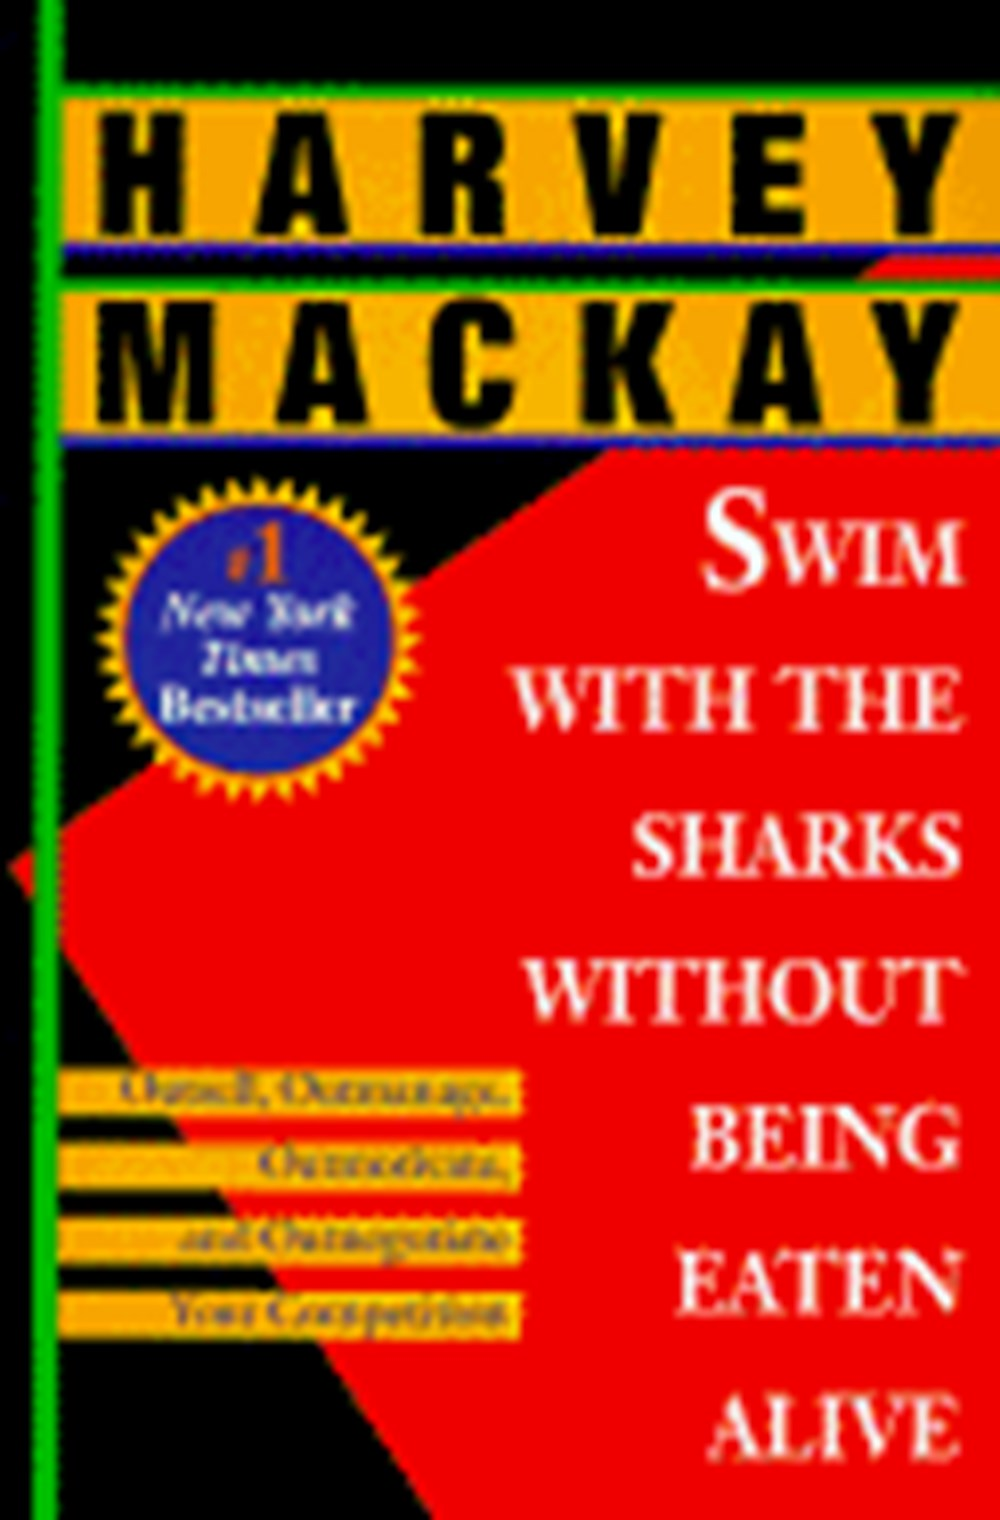 Swim with the Sharks Without Being Eaten Alive Outsell, Outmanage, Outmotivate, and Outnegotiate You